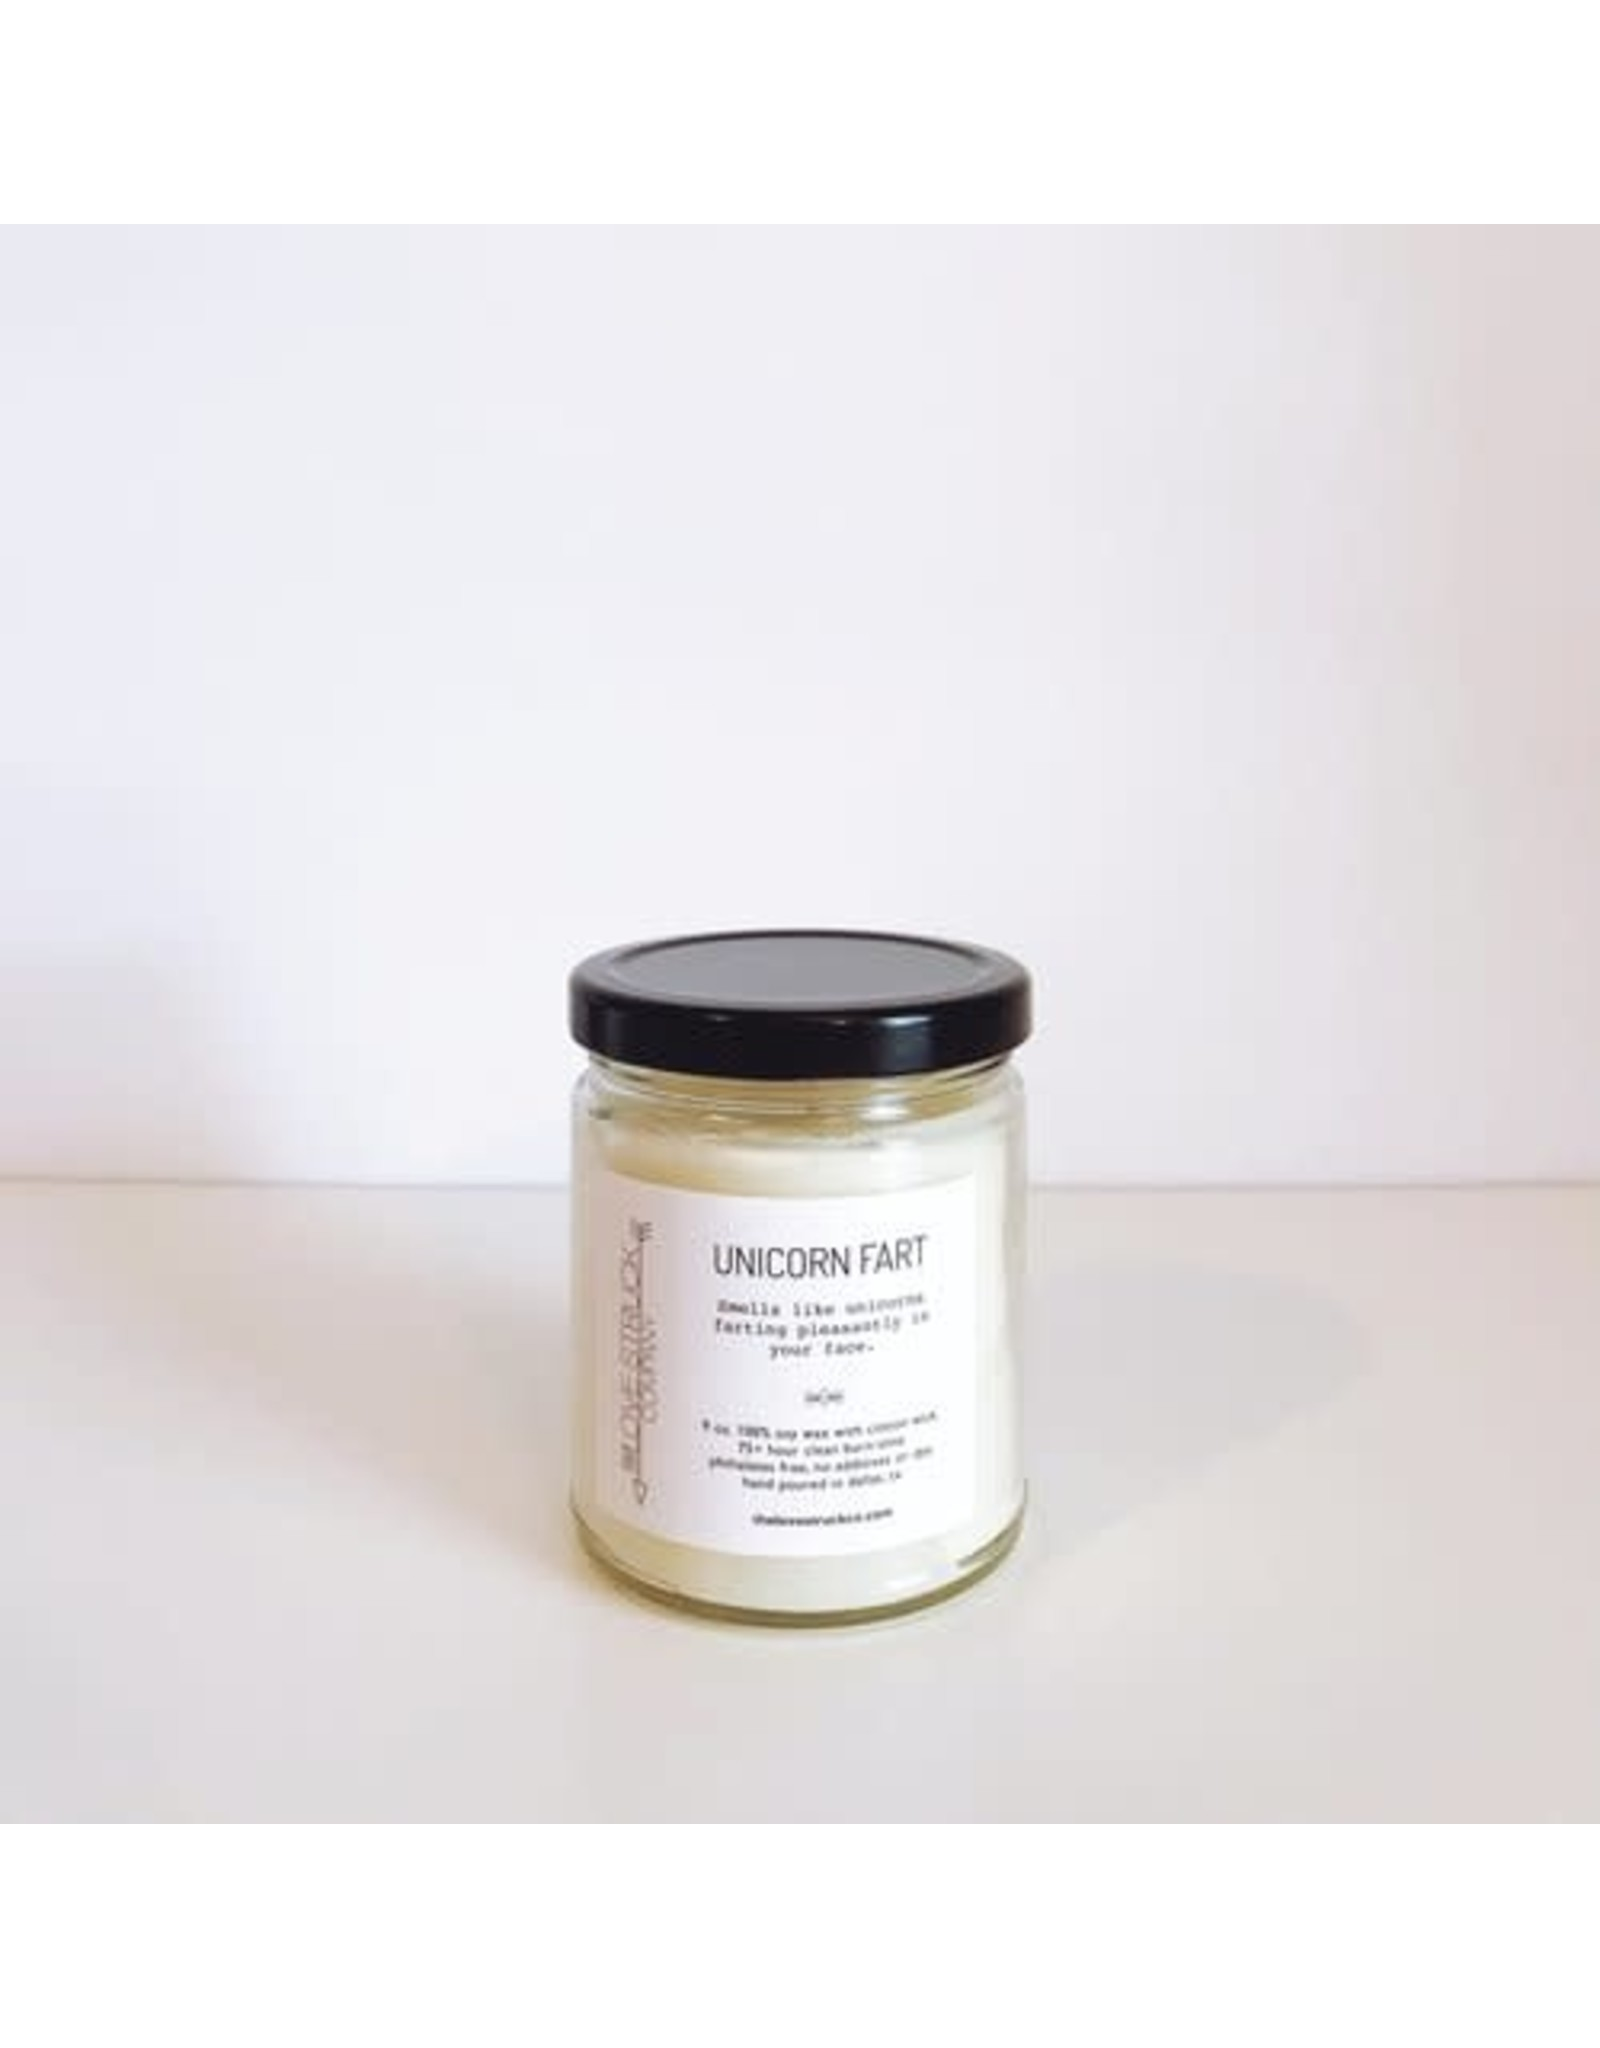 Love Struck Unicorn Fart Soy Candle